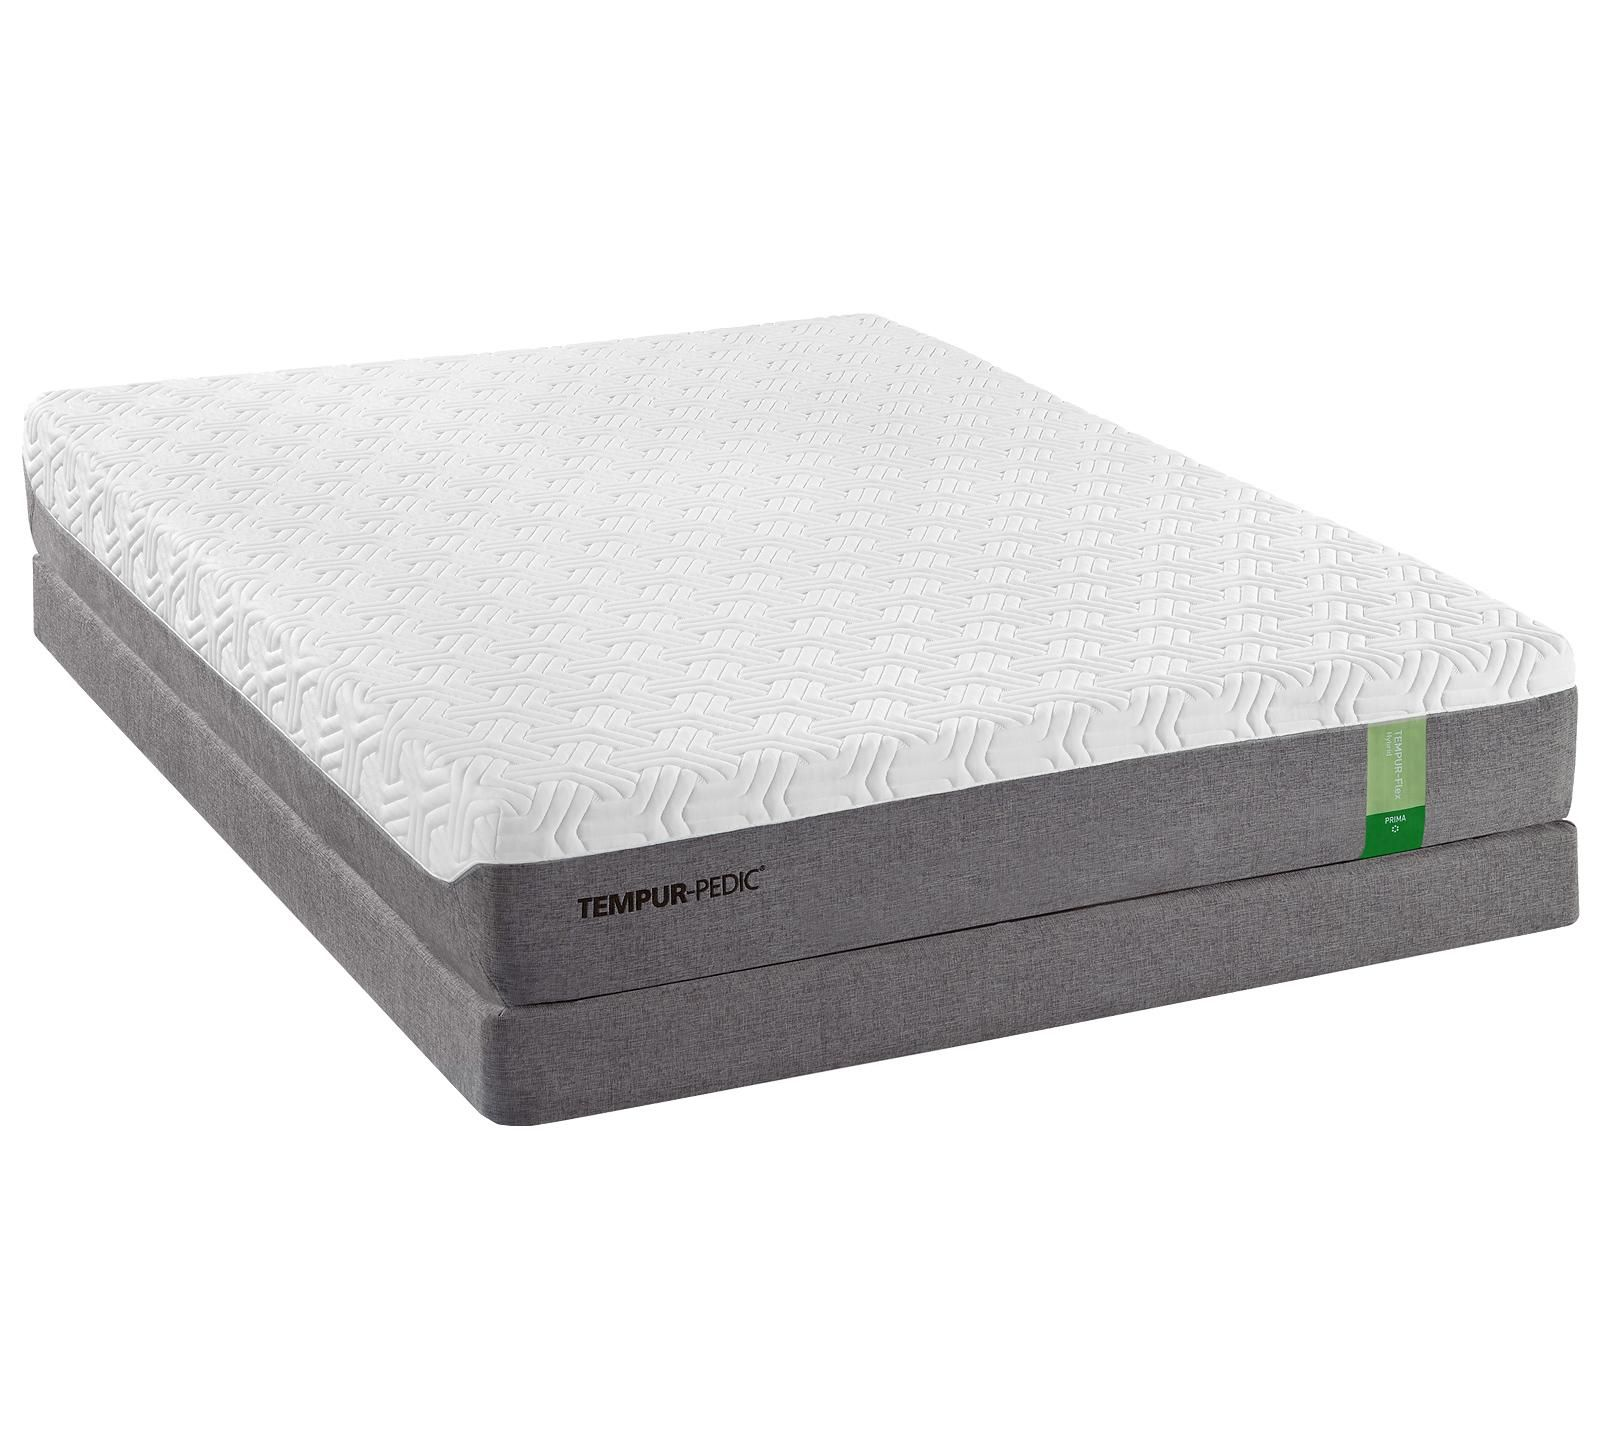 The TEMPURFlex Prima hybrid mattress is faster adapting